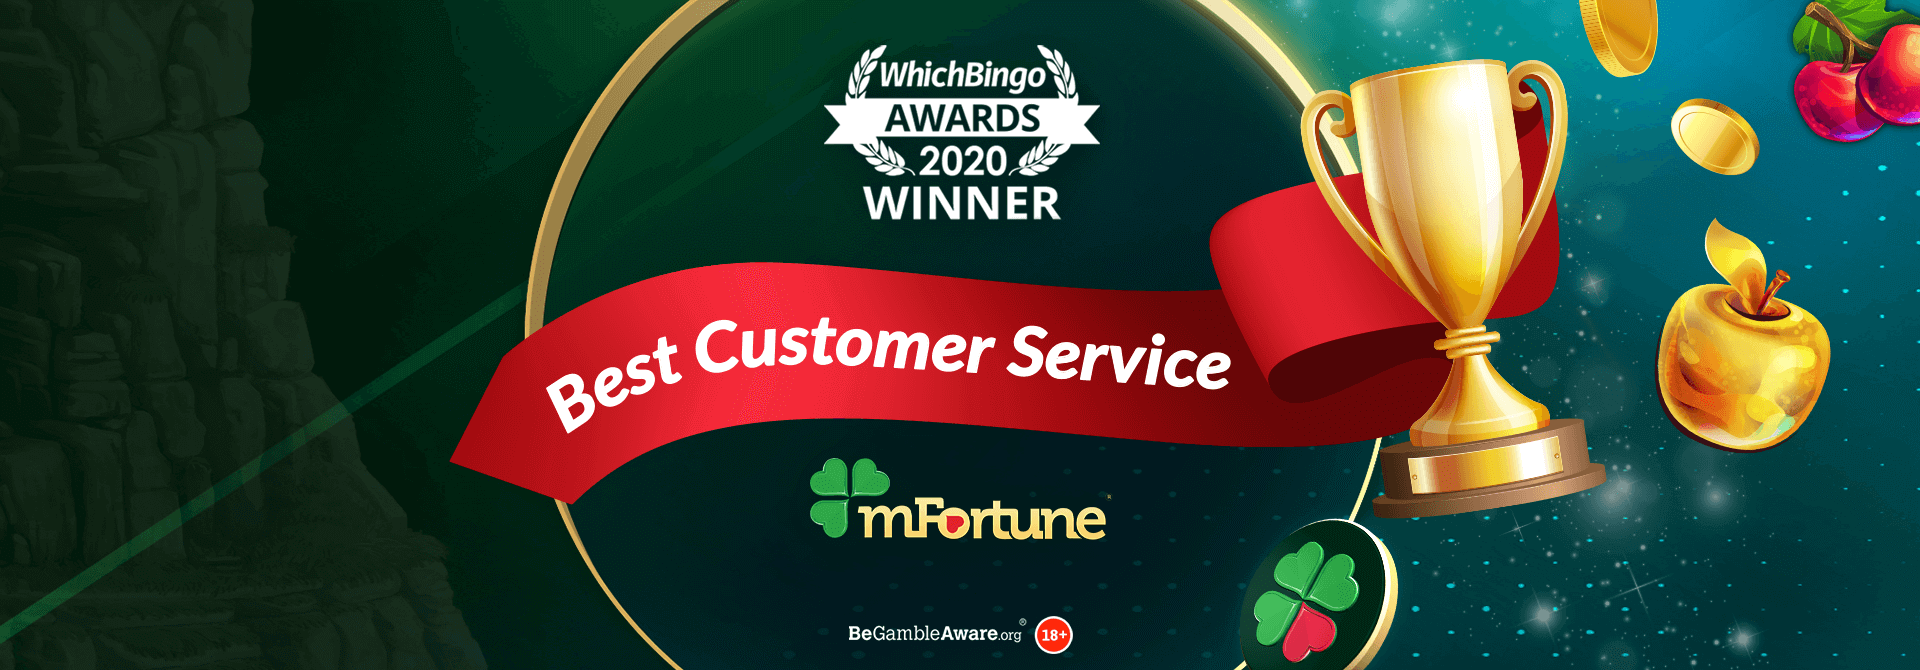 mFortune Win the Best Customer Service Casino at the WhichBingo Awards 2020!